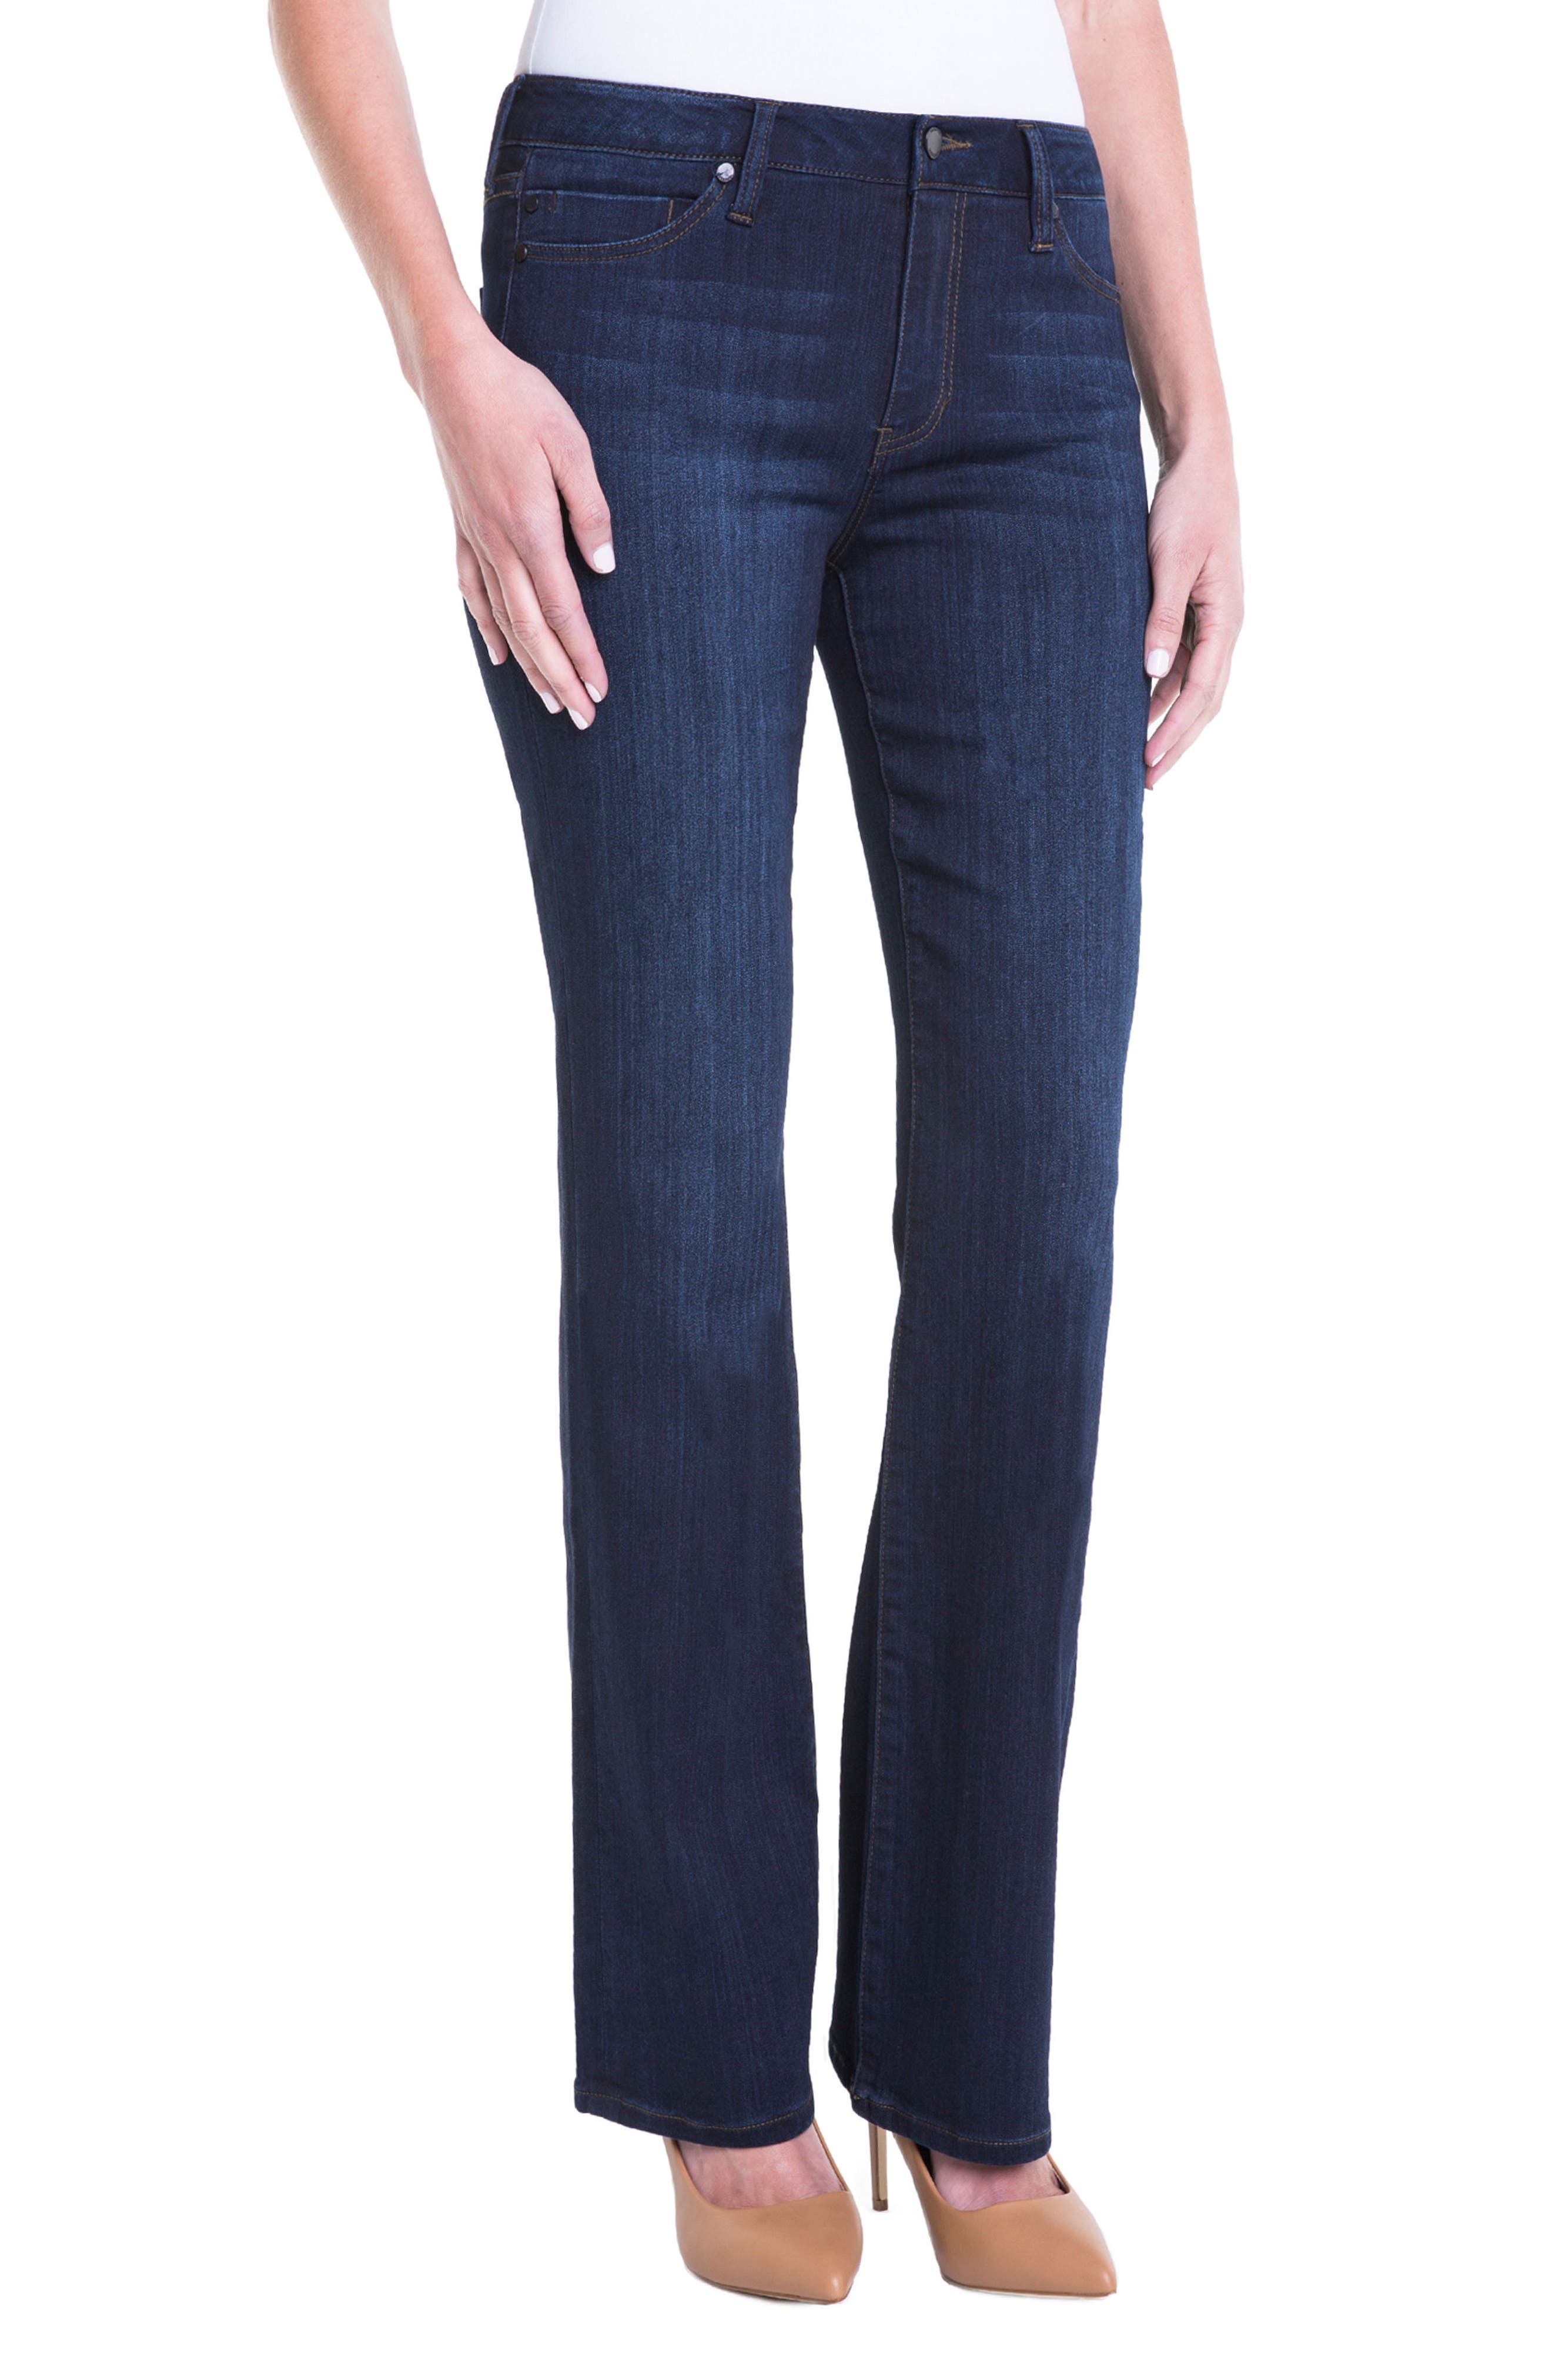 Lucy Bootcut Jeans,                             Alternate thumbnail 4, color,                             Dunmore Dark